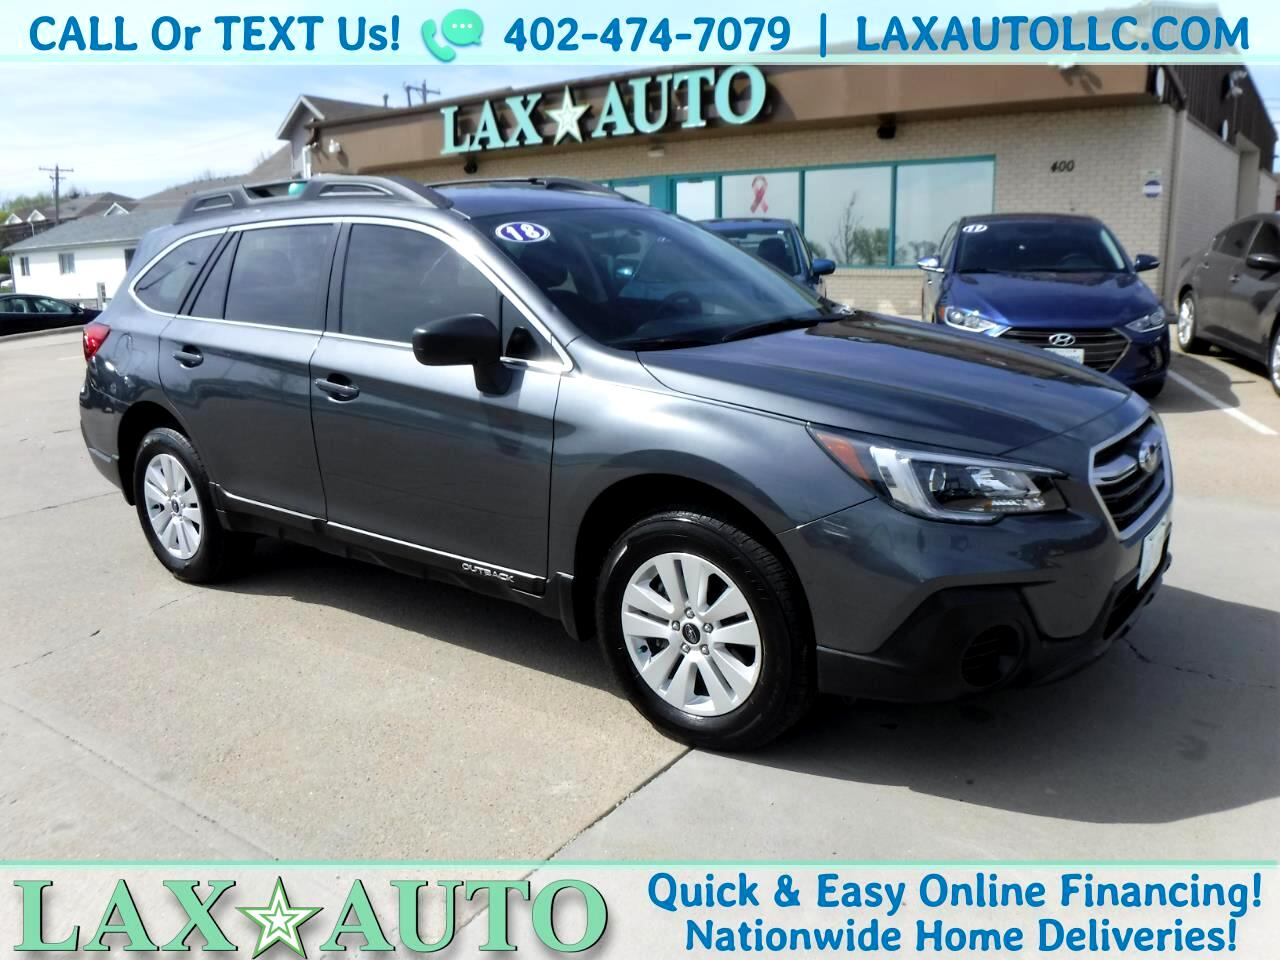 2018 Subaru Outback 2.5i AWD * Only 3,194 miles!